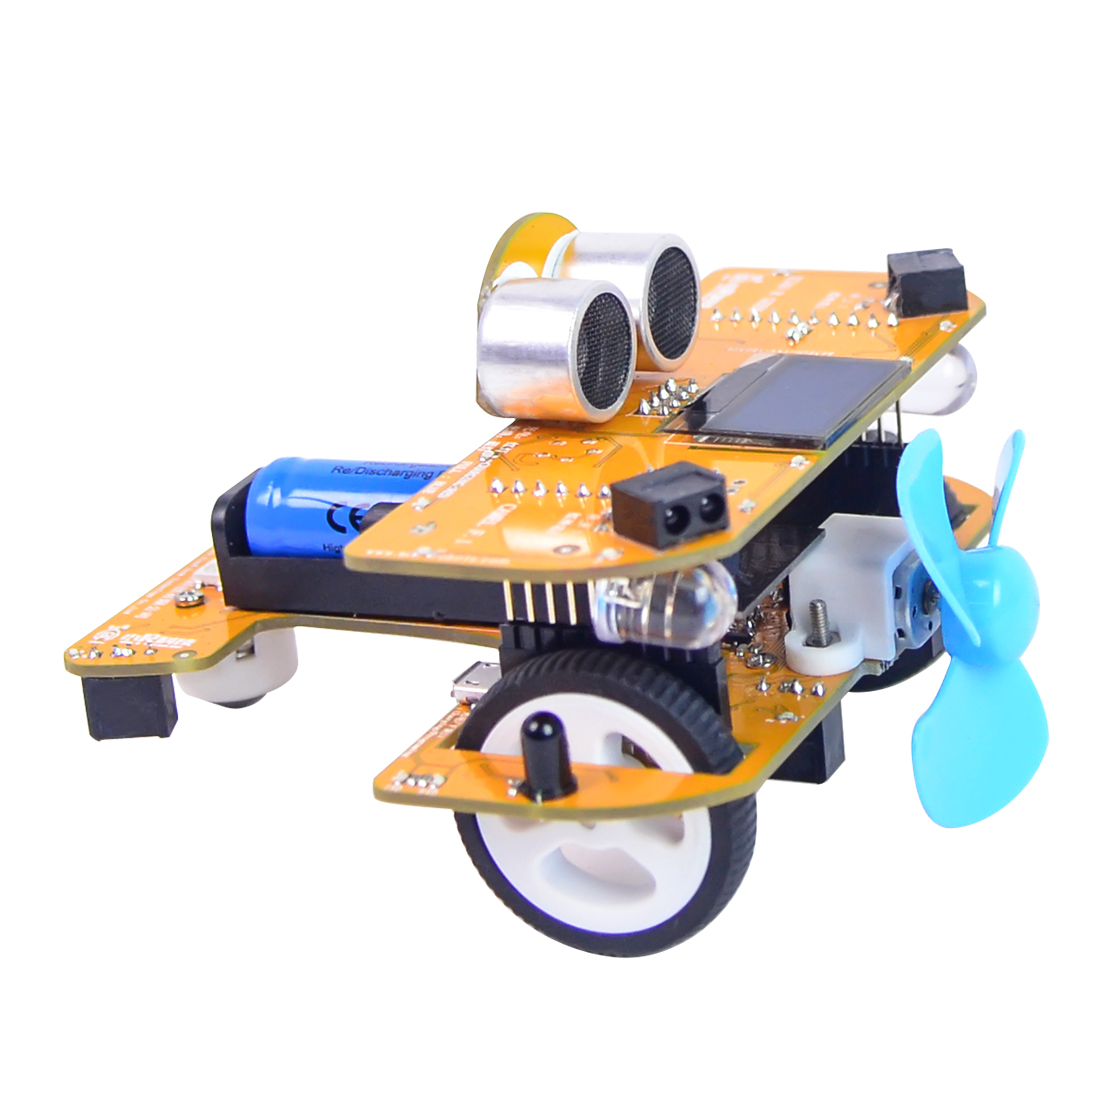 Programmable Intelligent Car Toy Steam Educational DIY Plane With Graphical Processing Scratch Mixly For Arduino UNO R3